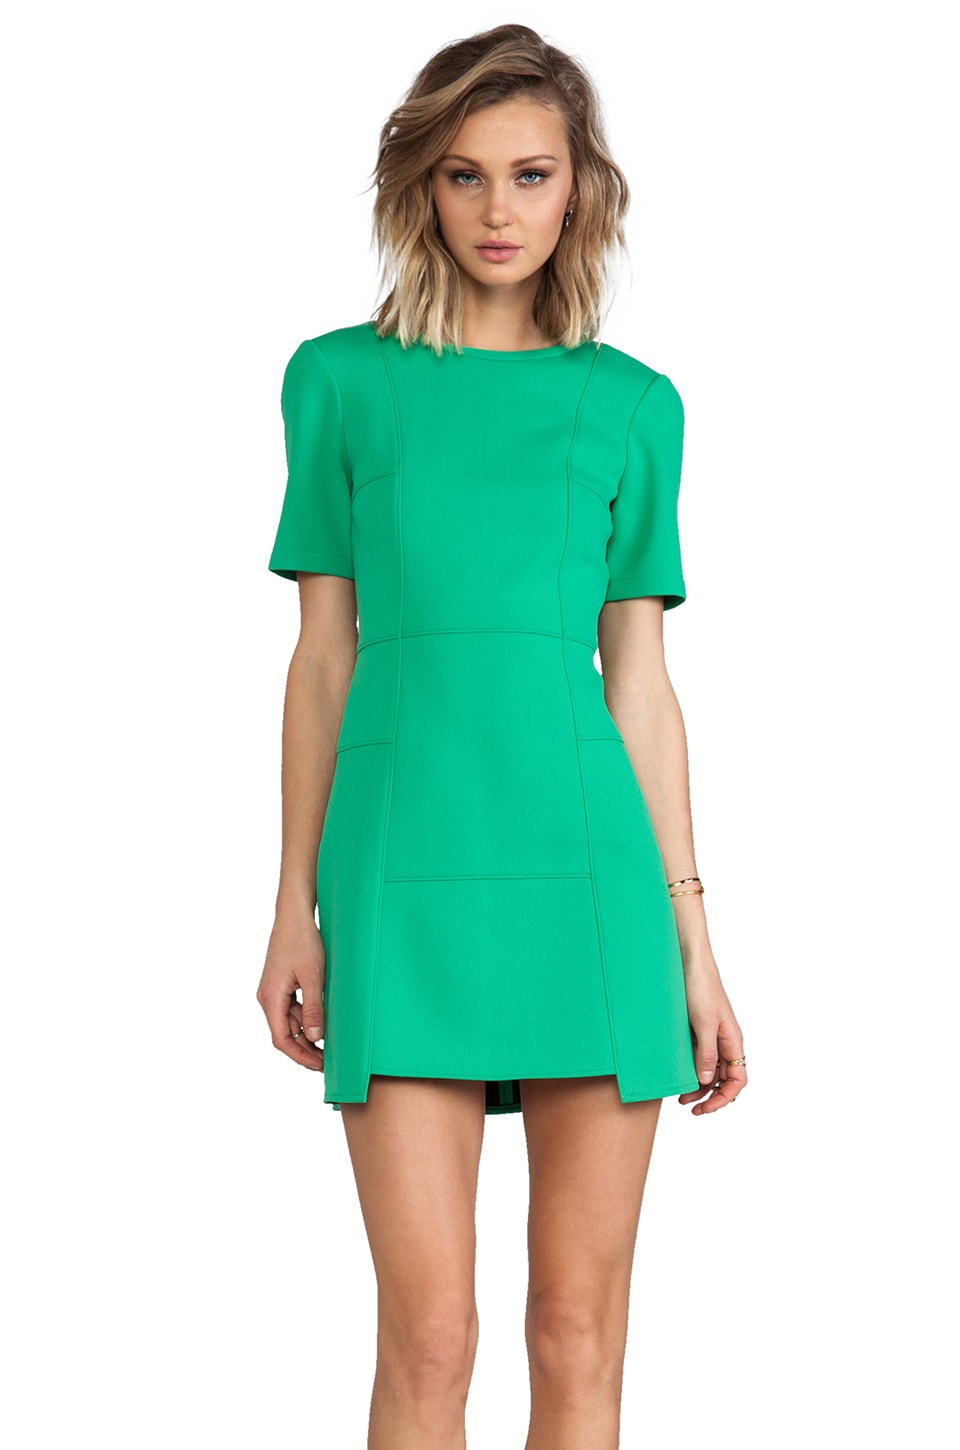 Tibi Bonded Techno Knit Dress in Green